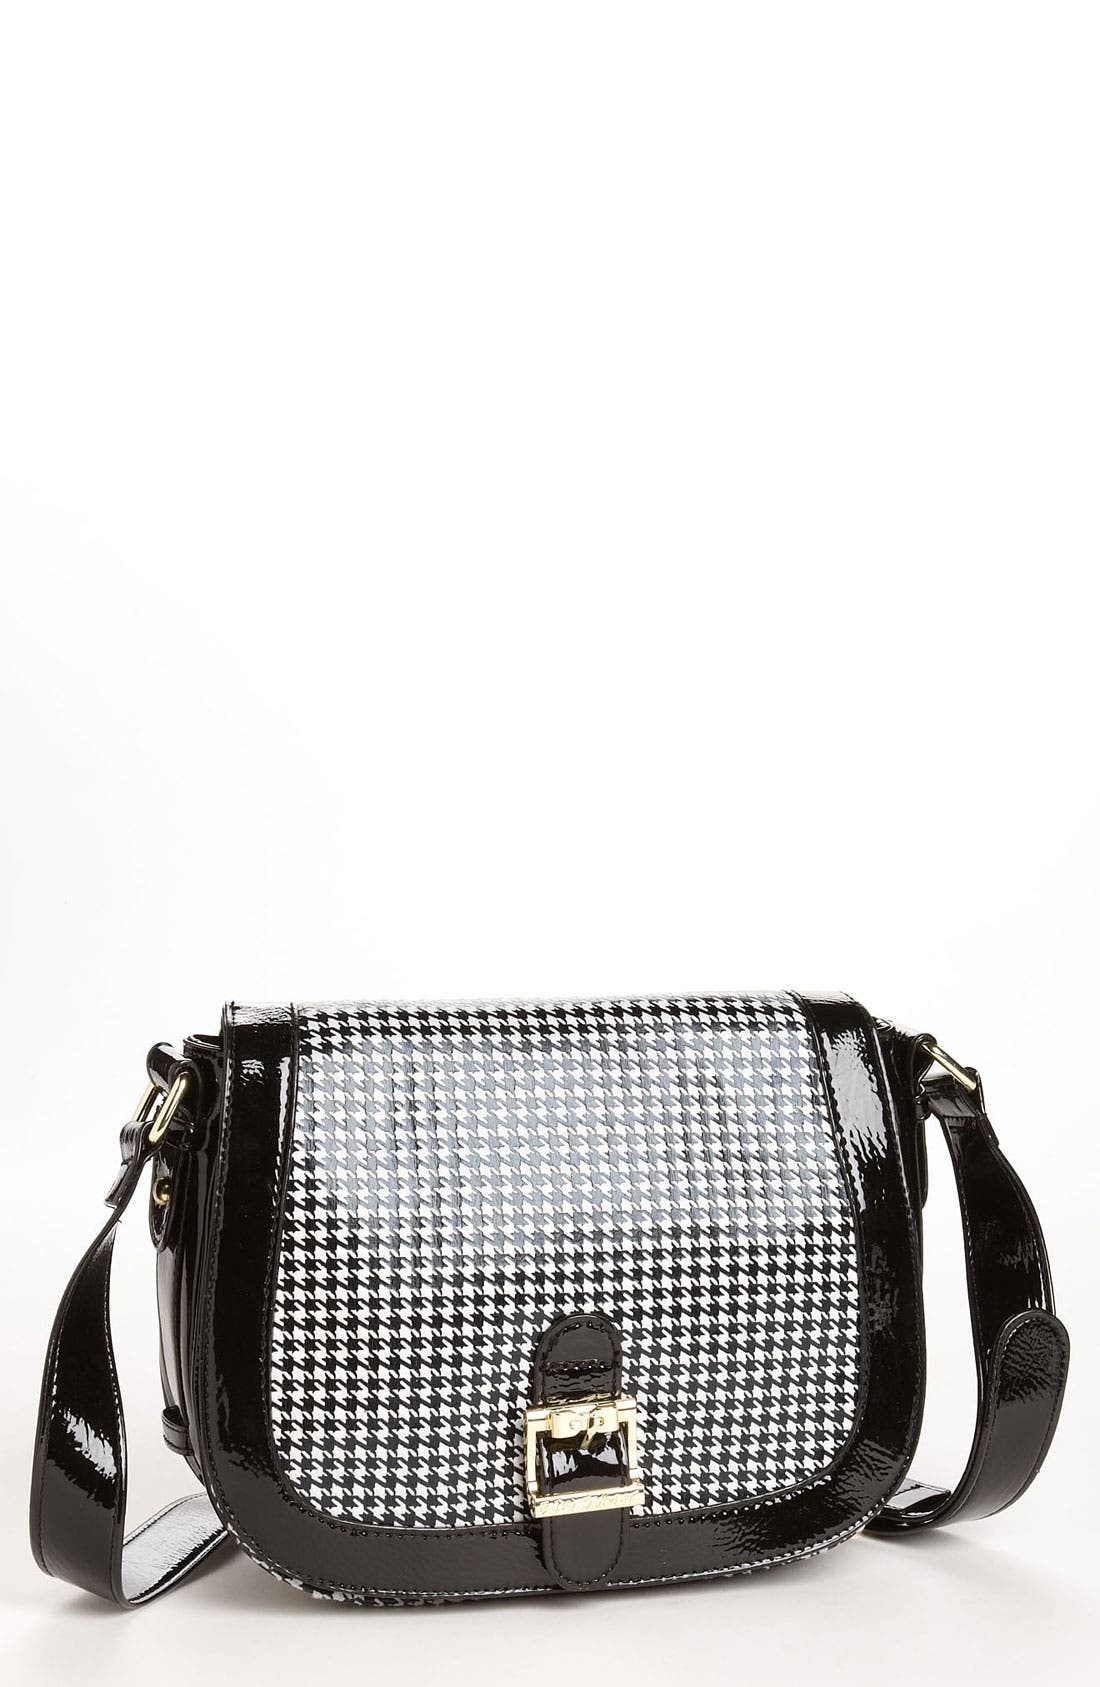 Alternate Image 1 Selected - Betsey Johnson Houndstooth Crossbody Bag